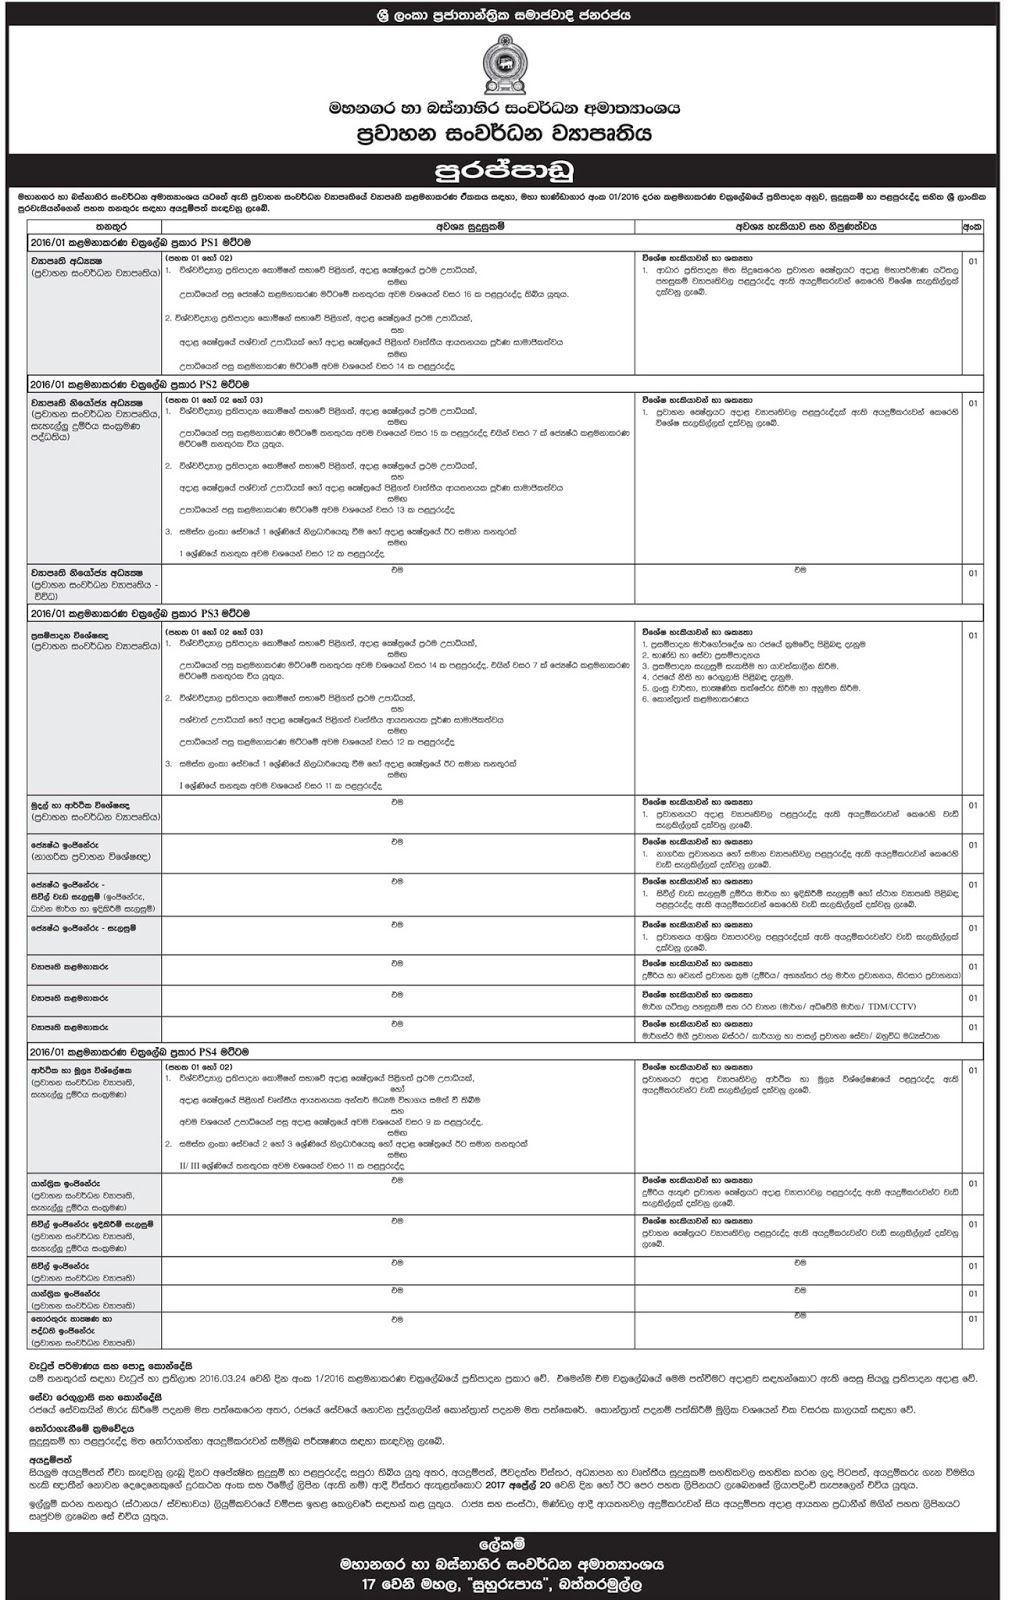 Sri Lankan Government Job Vacancies At Ministry Of Megapolis